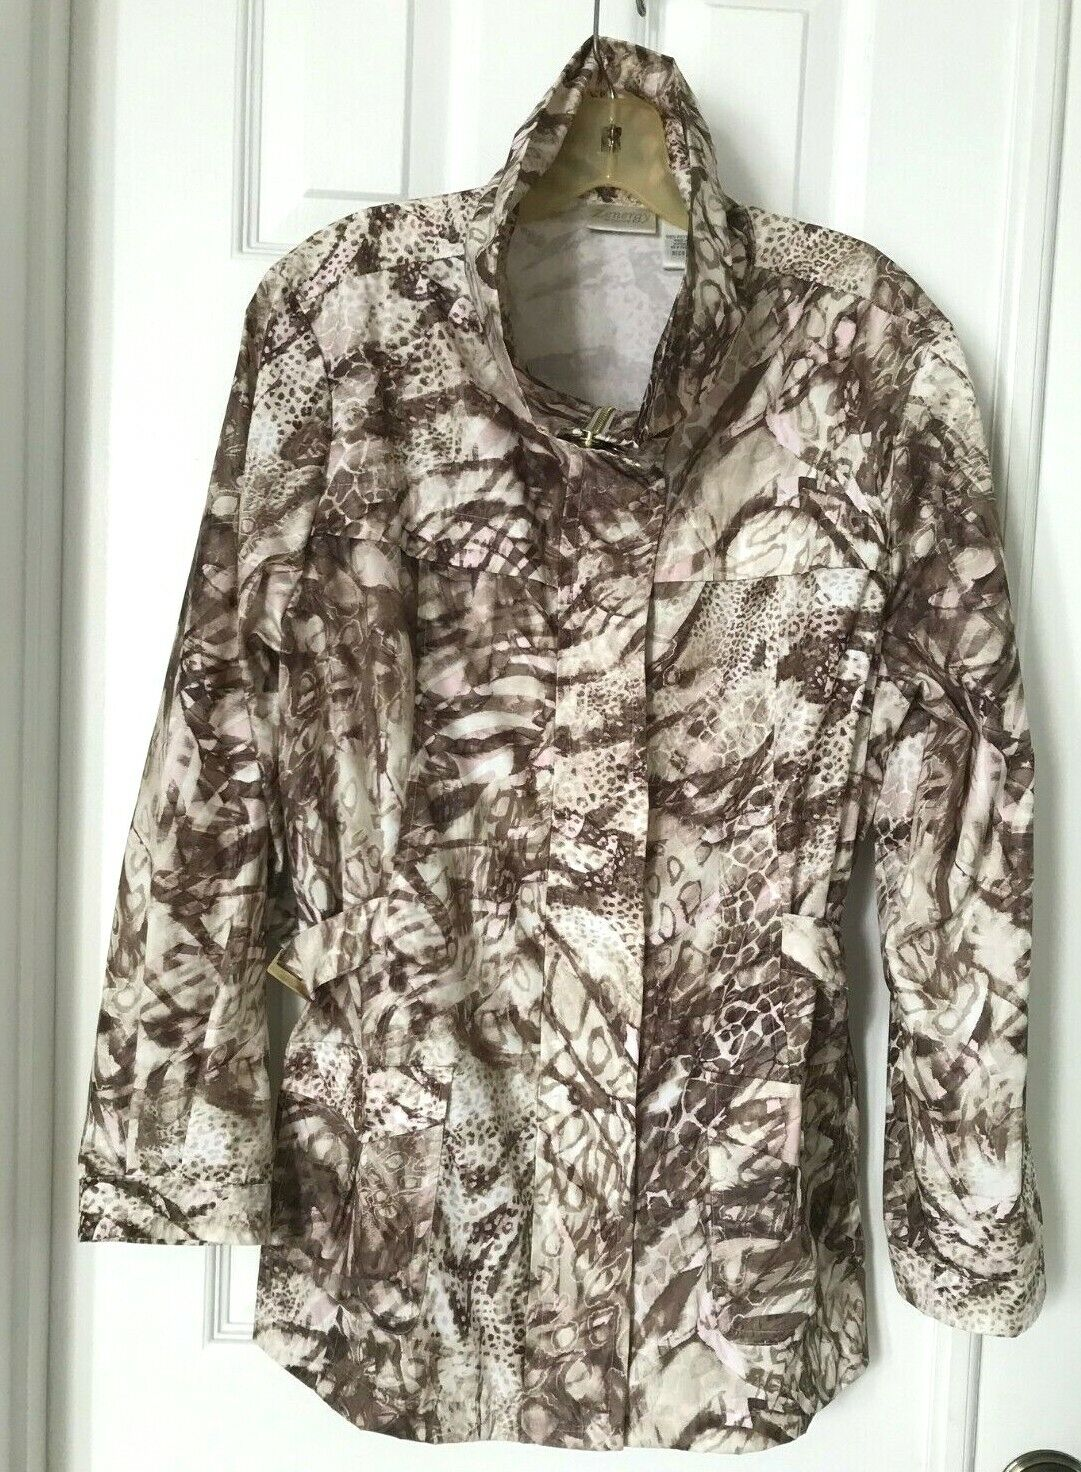 Zenergy By Chicos Lightweight Zip Up Jacket 2 (L) 100% Polyester Animal Print